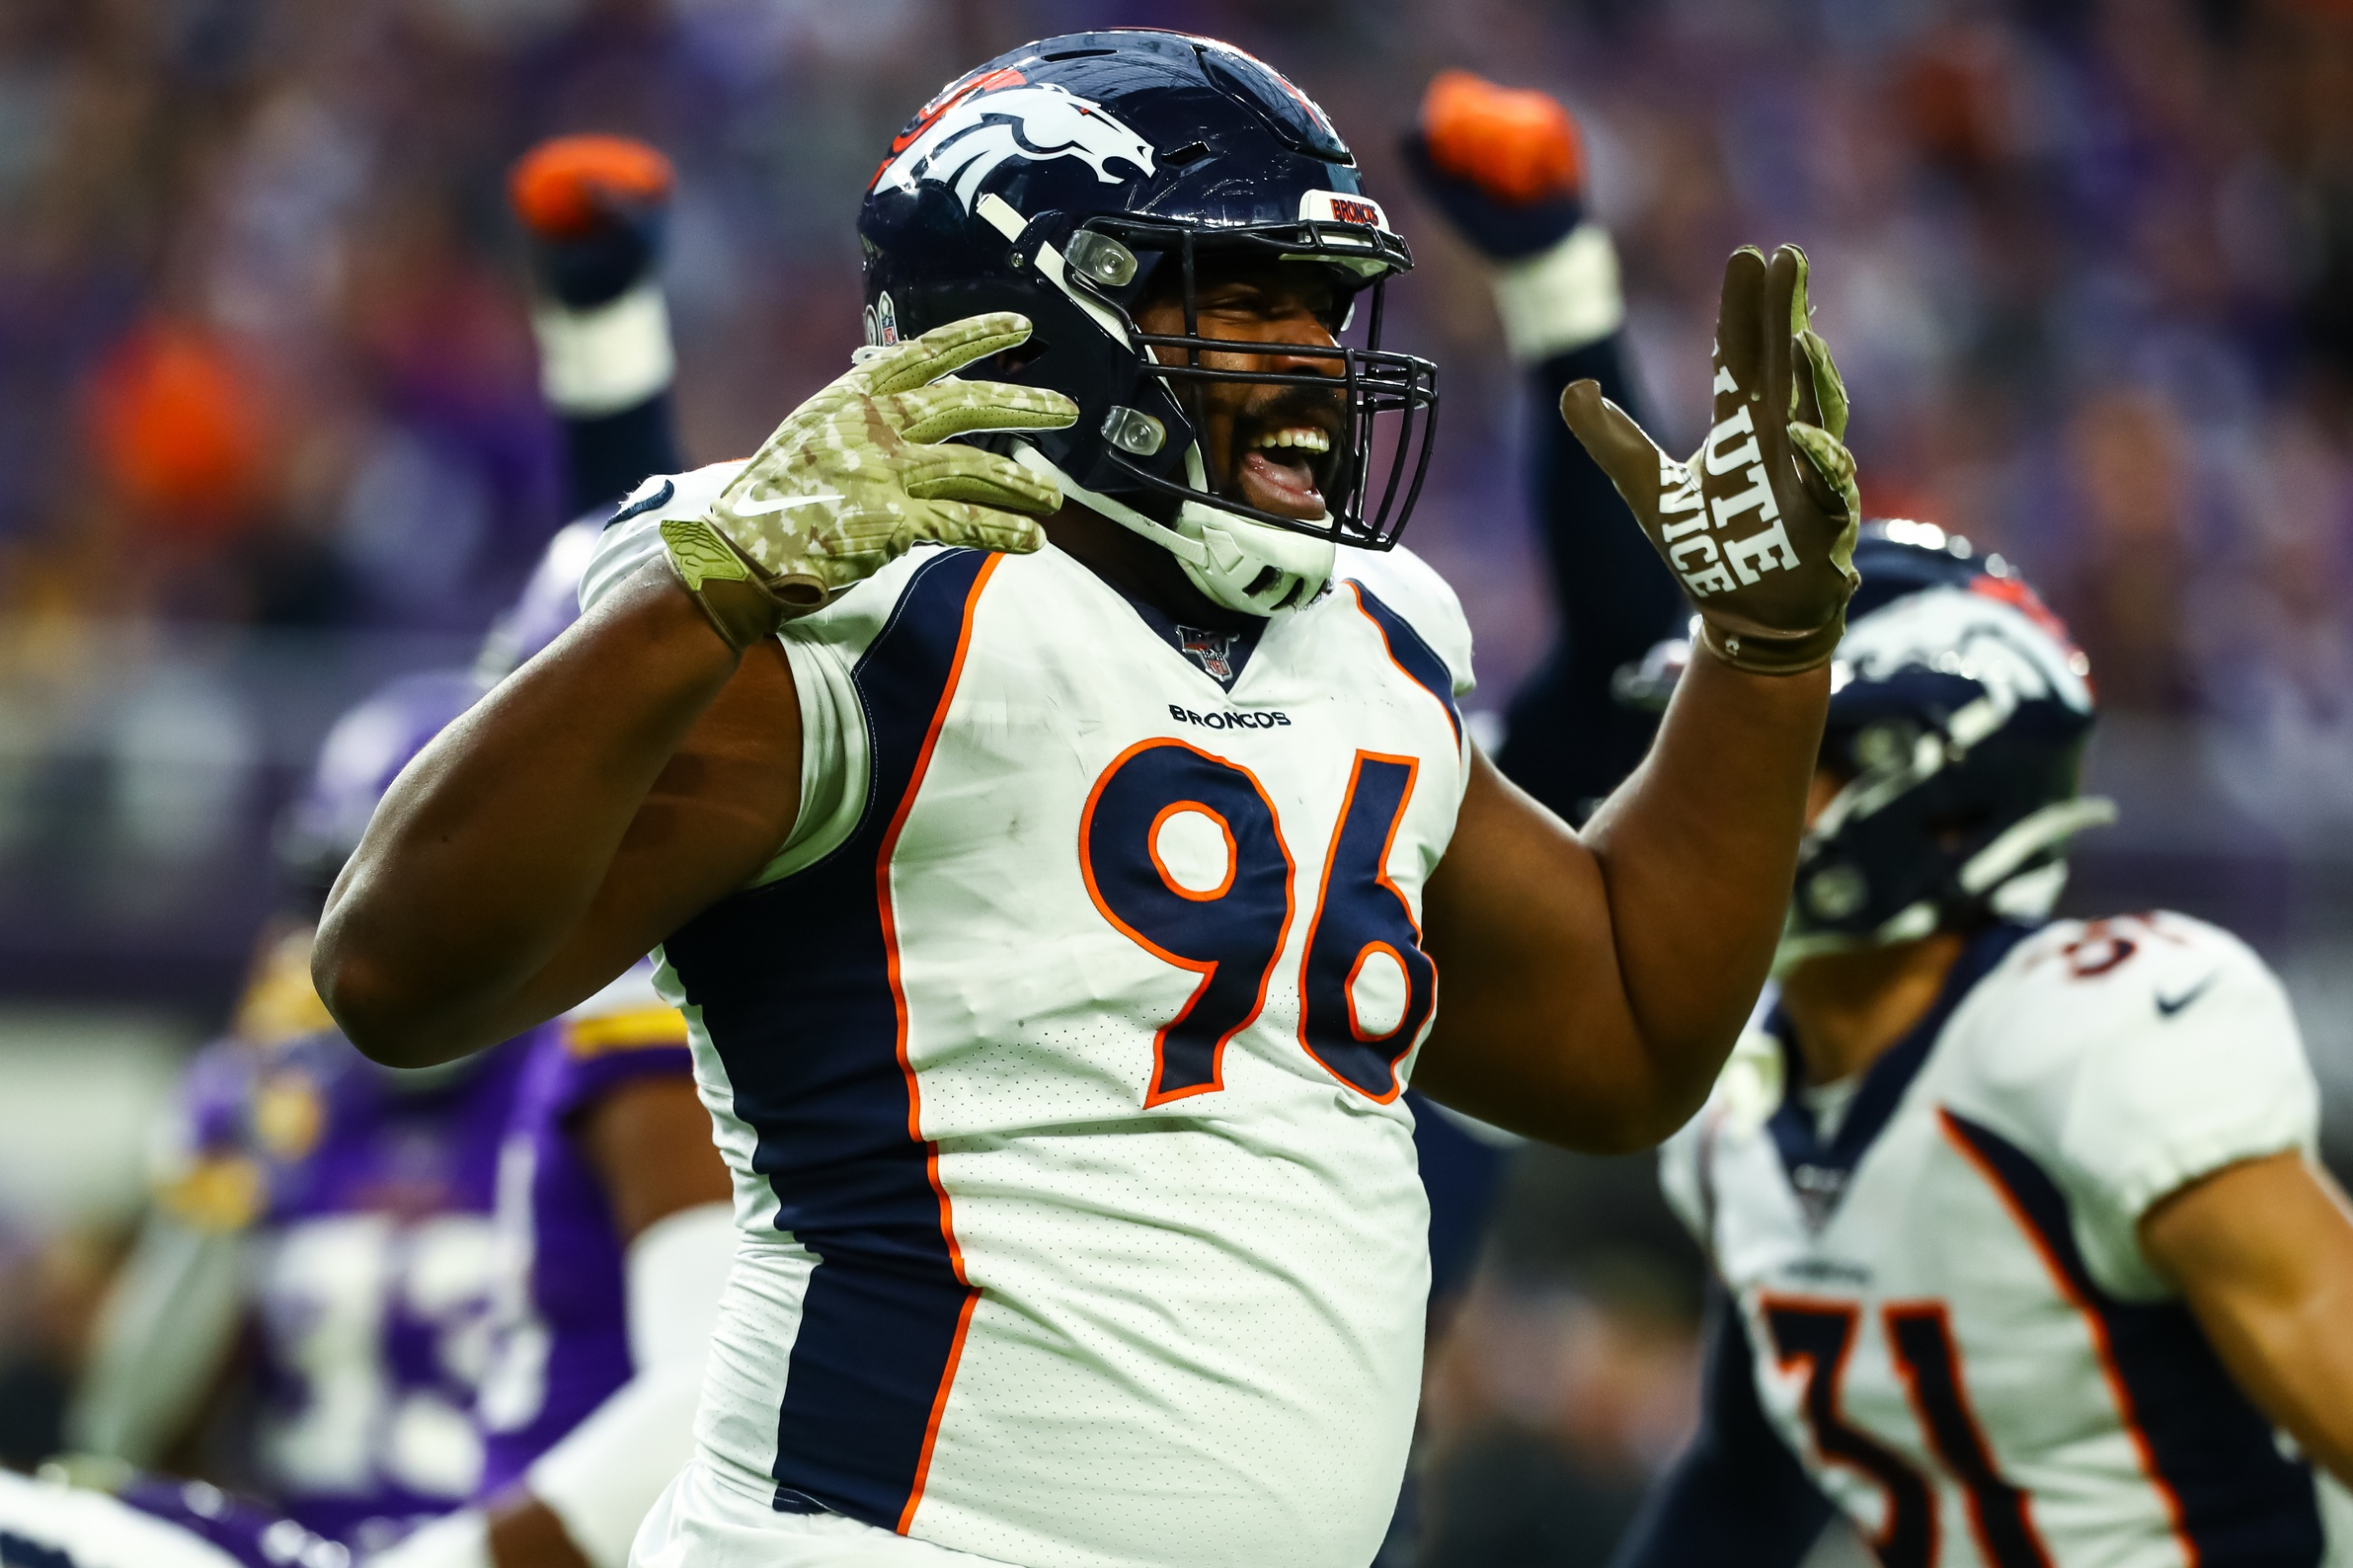 Broncos' DL Shelby Harris is Garnering Major Interest Around NFL, Could Command North of $12M